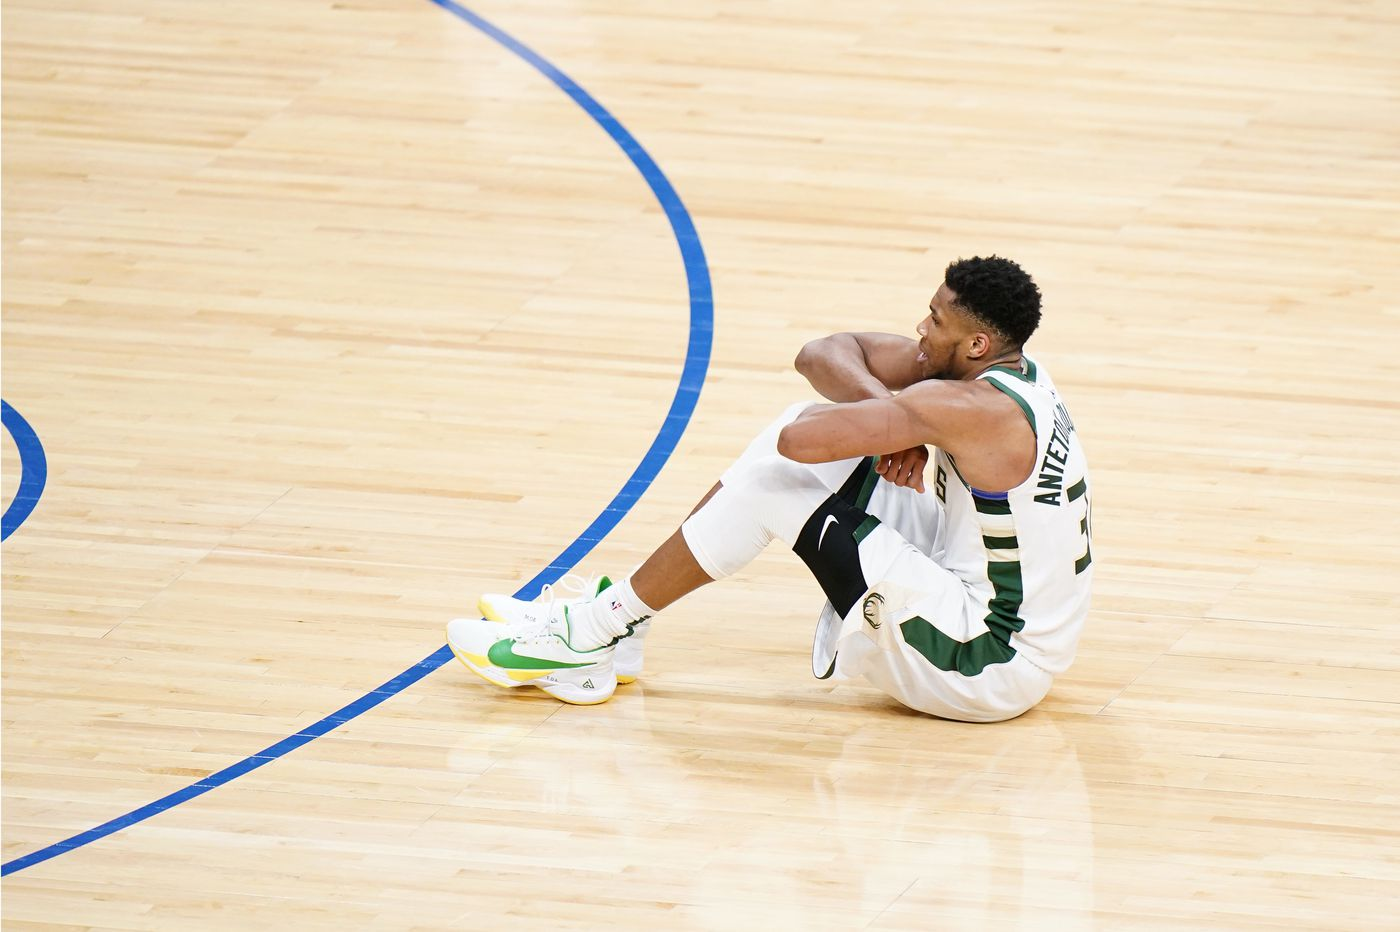 The Sixers run out of answers for Giannis Antetokounmpo in the second half | 76ers-Bucks best/worst